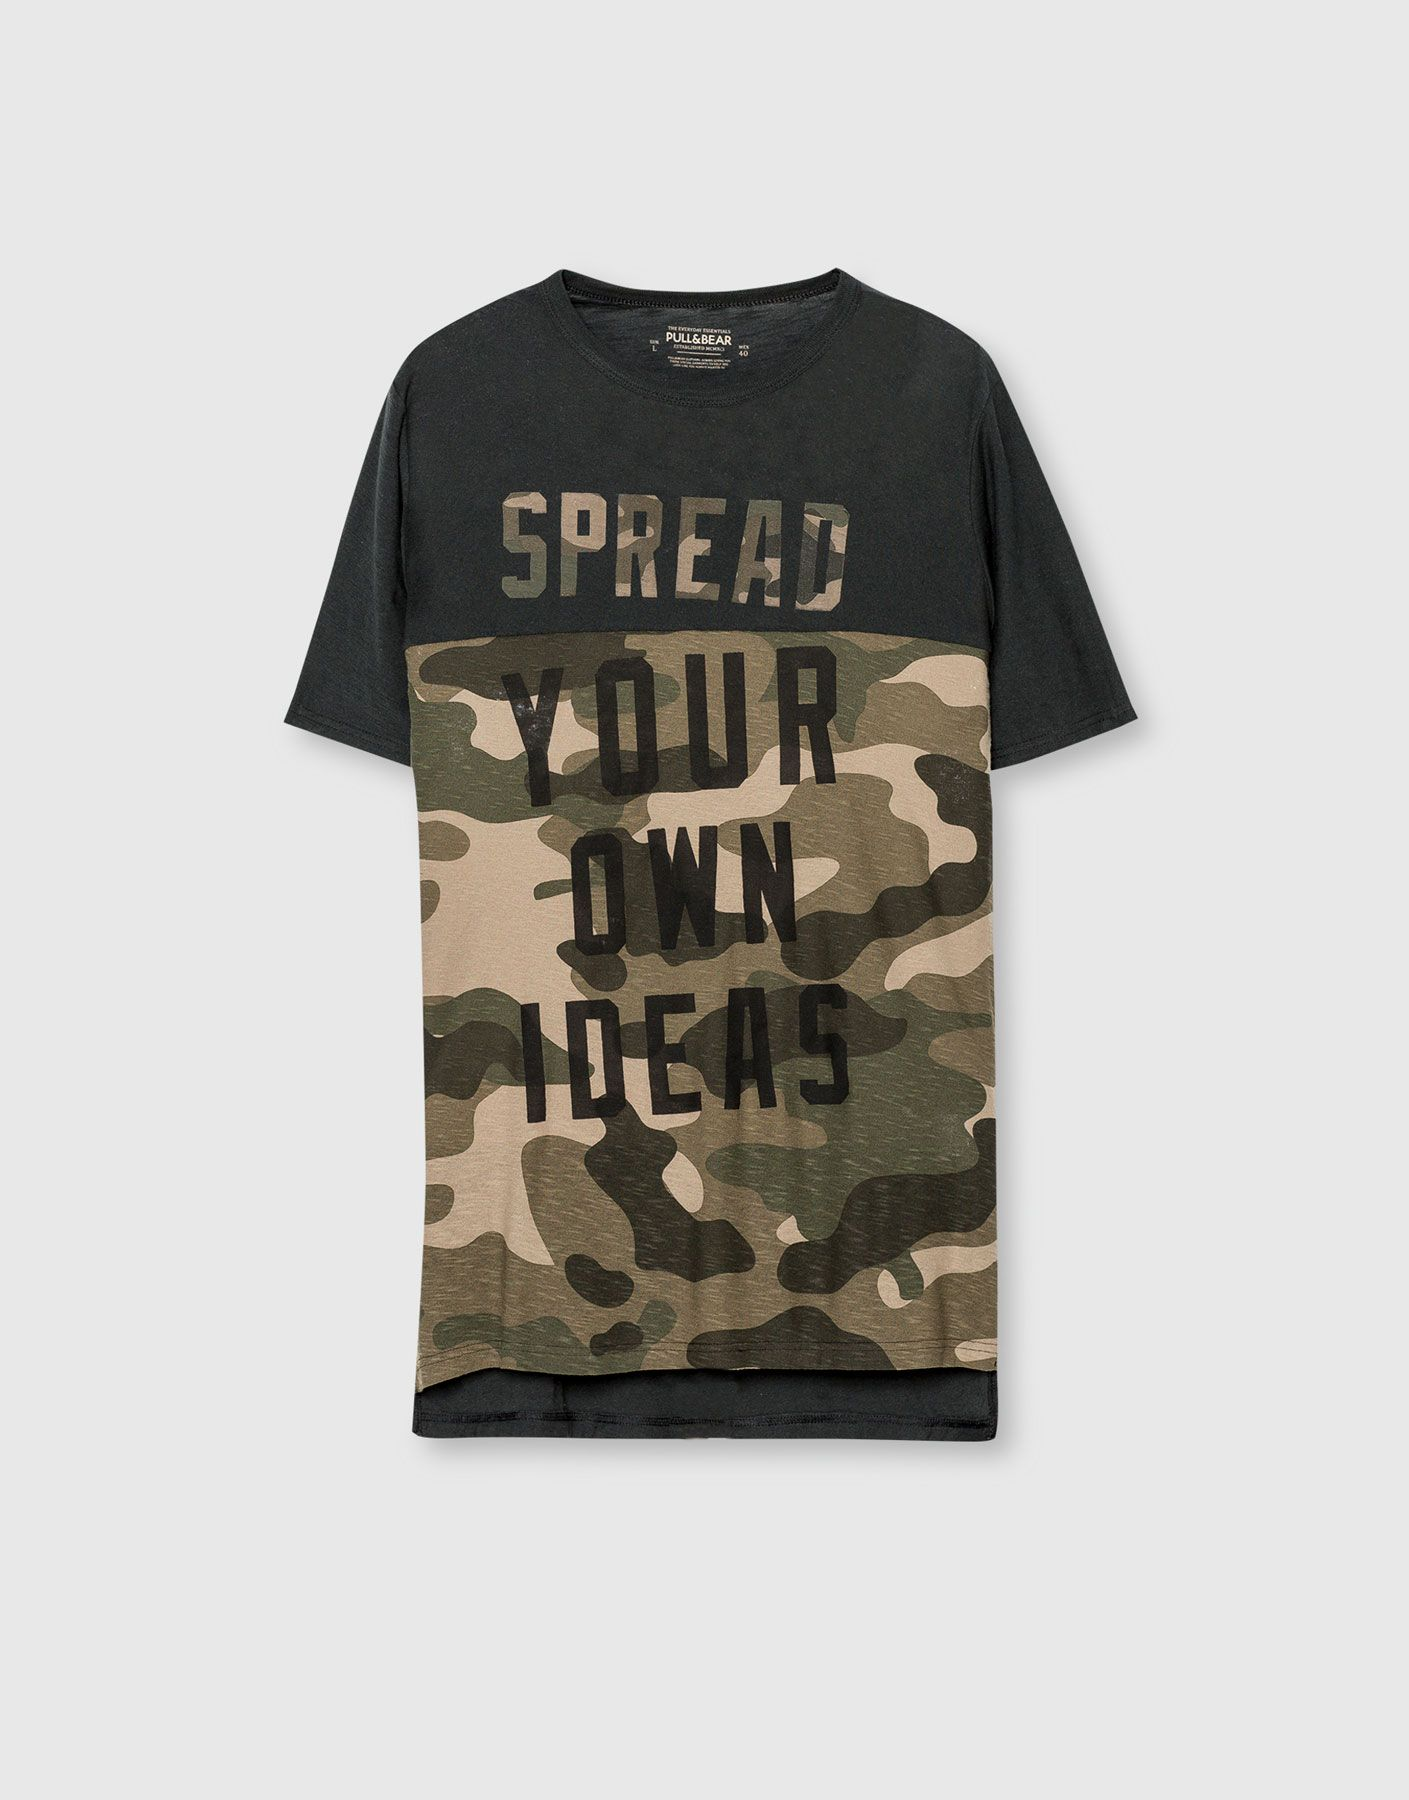 T-shirt camouflage inscription - T-shirts - Vêtements - Homme - PULL BEAR  Belgique e3ef97119a3